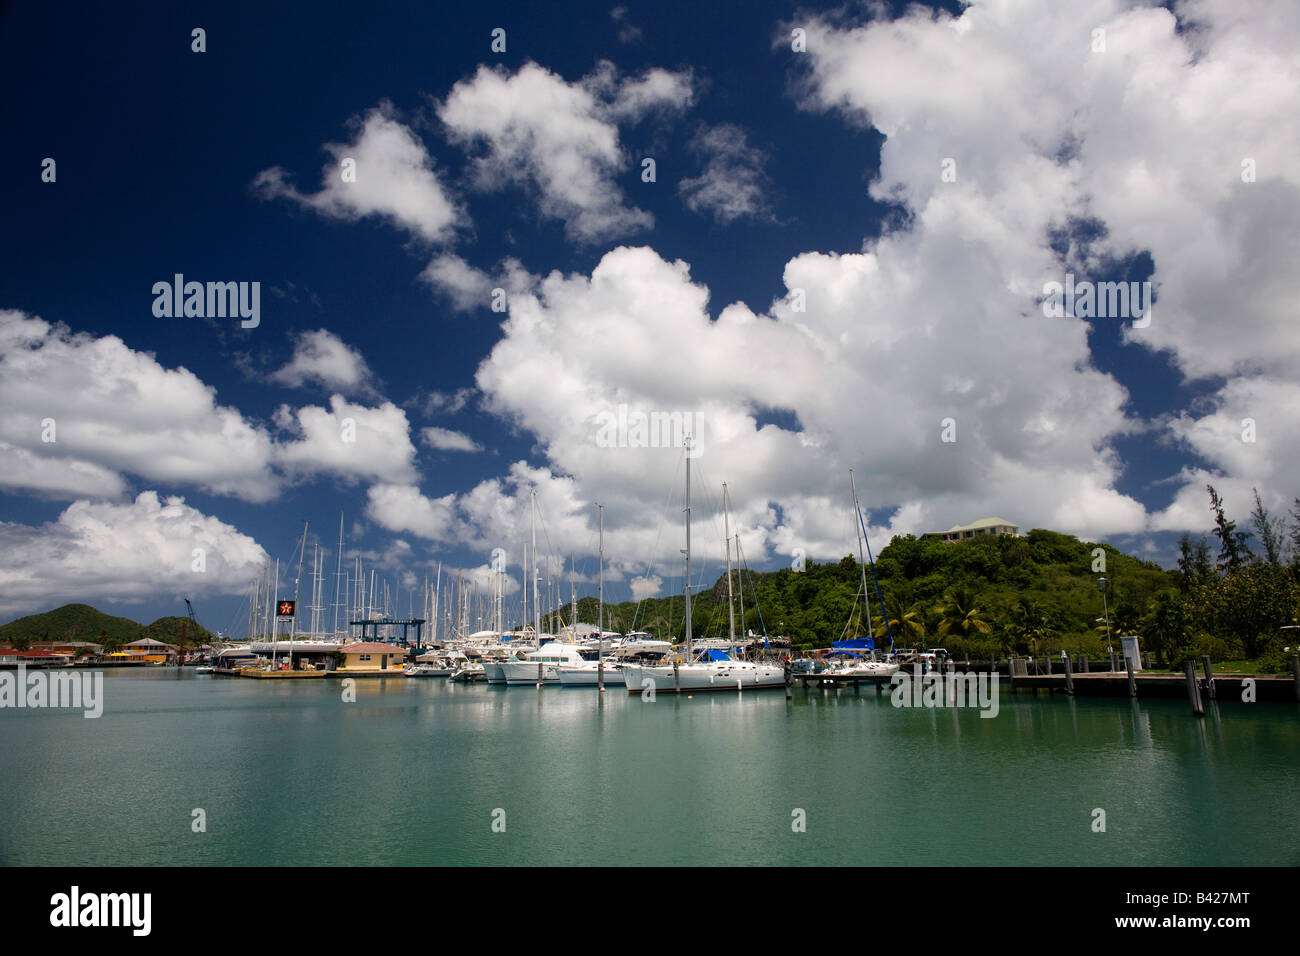 Yachts au mouillage dans Antigua Jolly Harbour Photo Stock